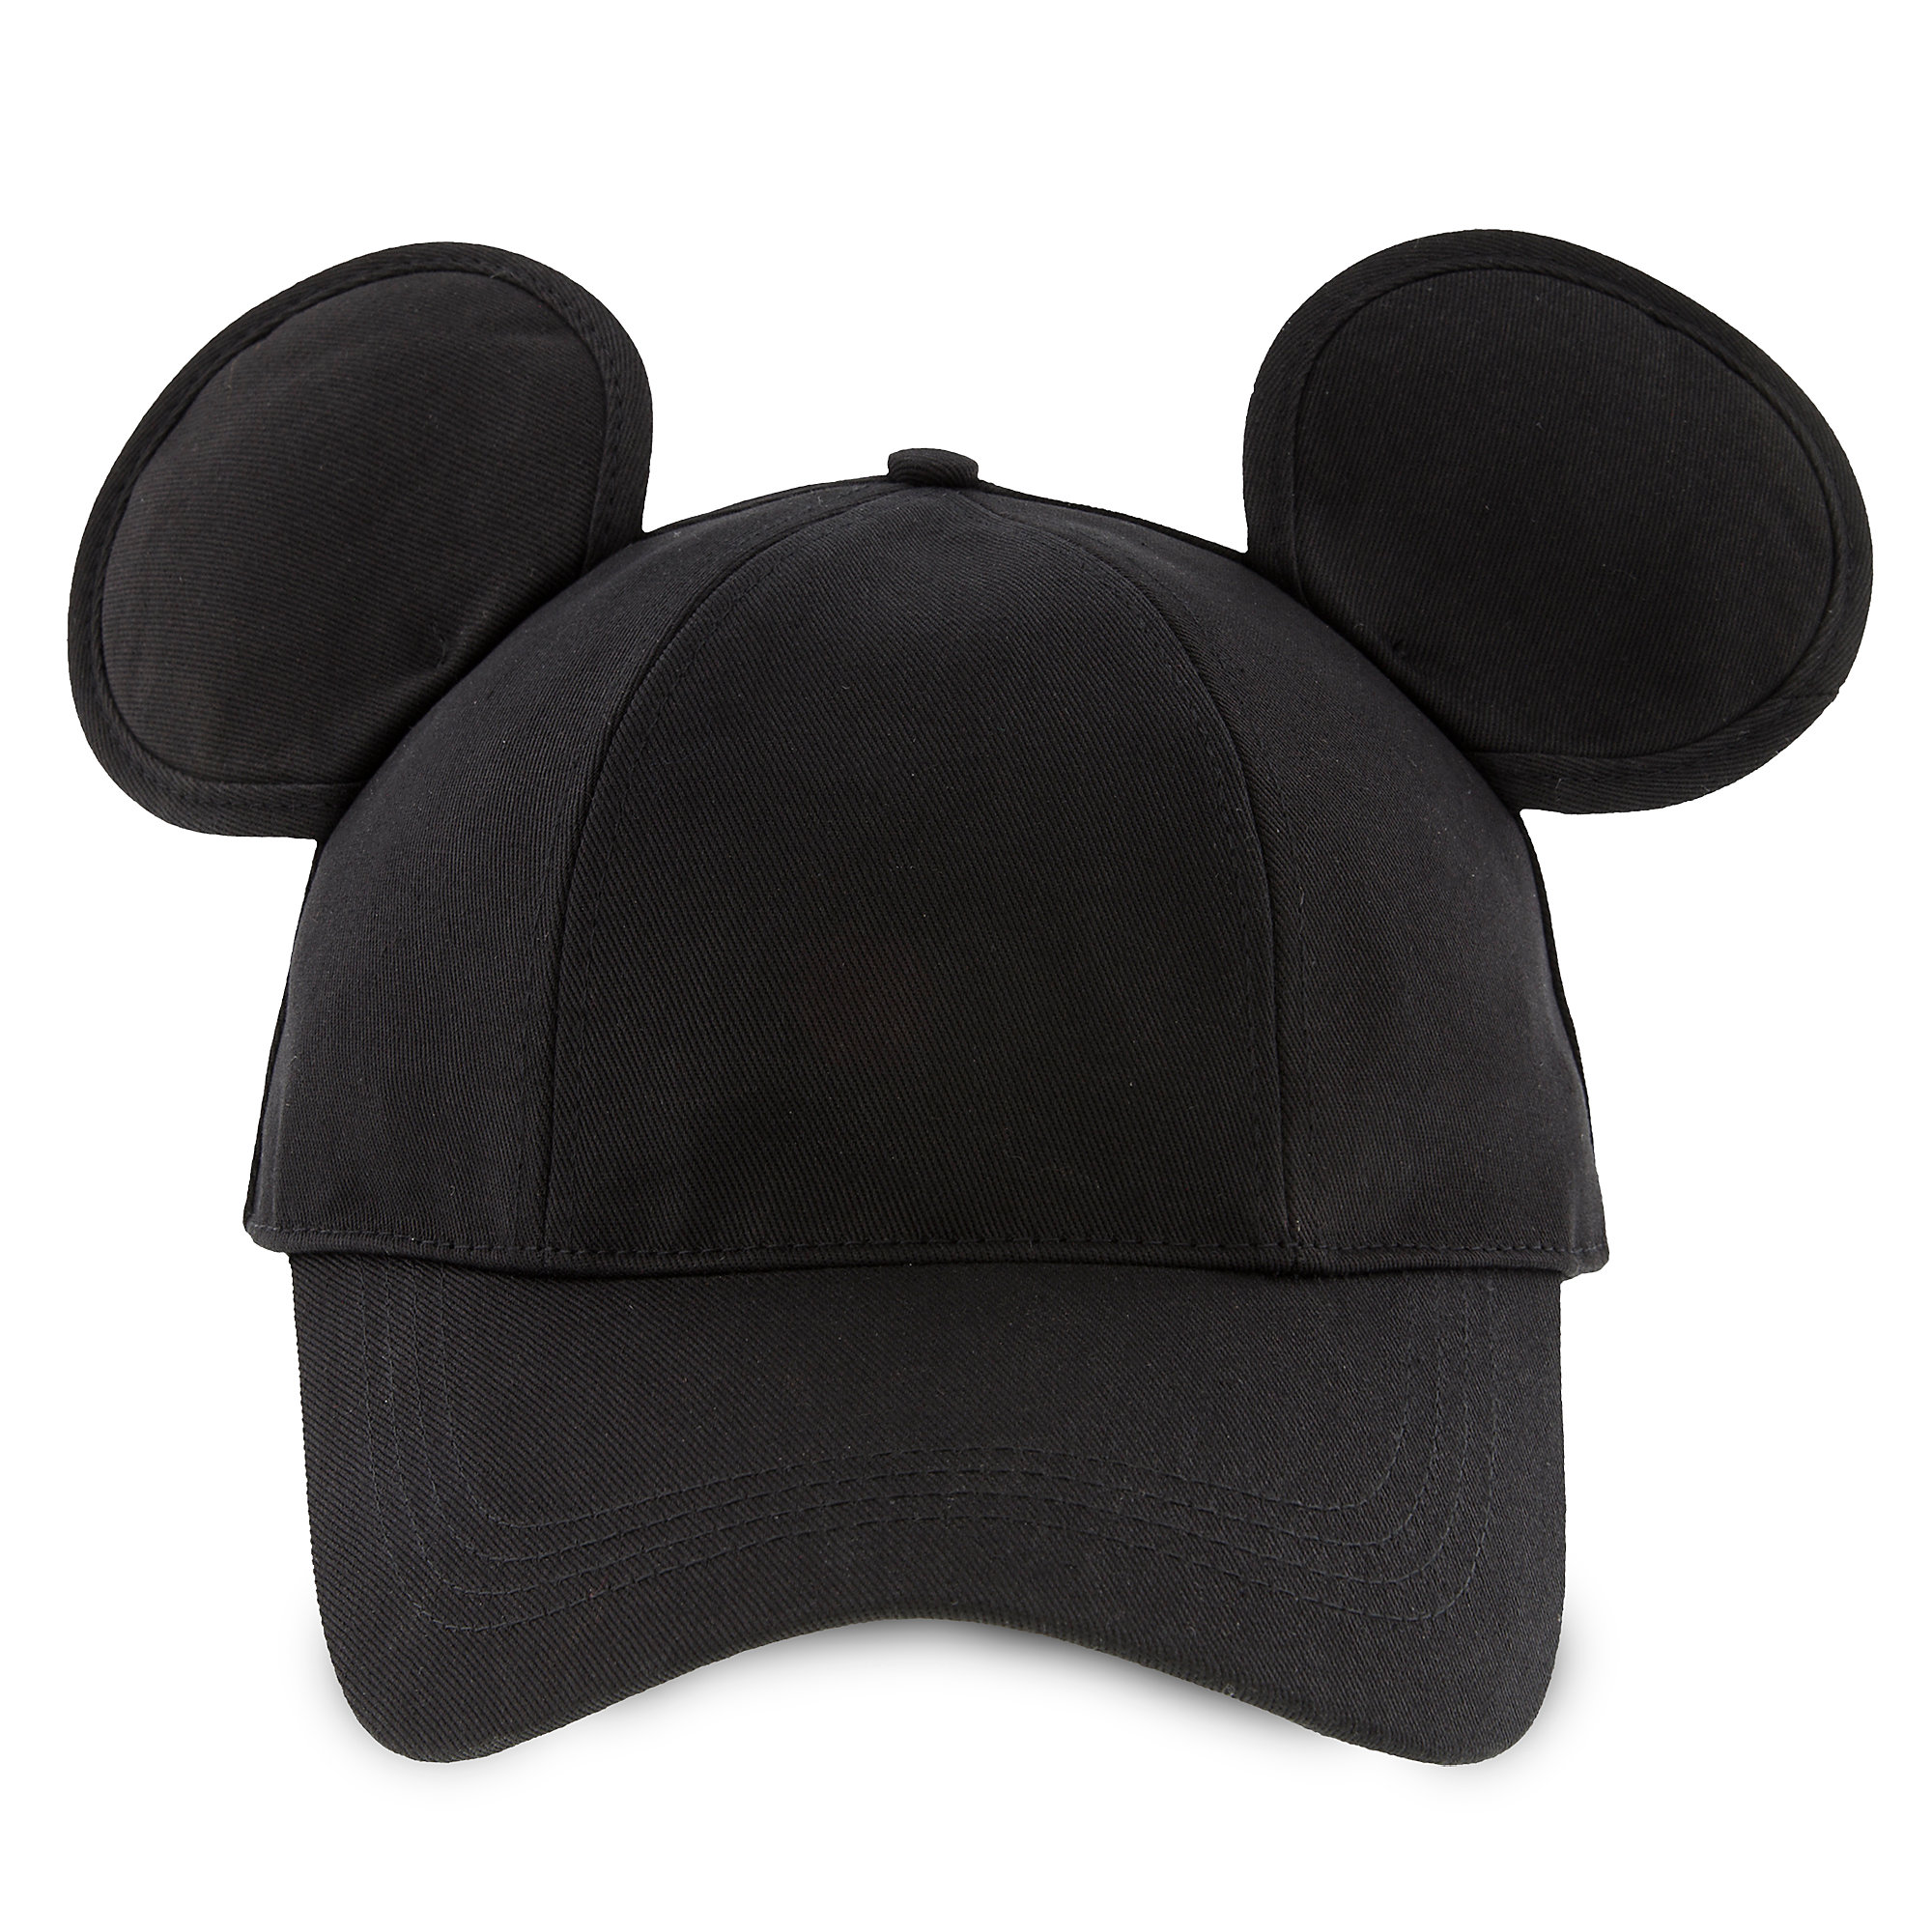 f796dbf4d635e Mickey Mouse Ears Baseball Cap for Adults